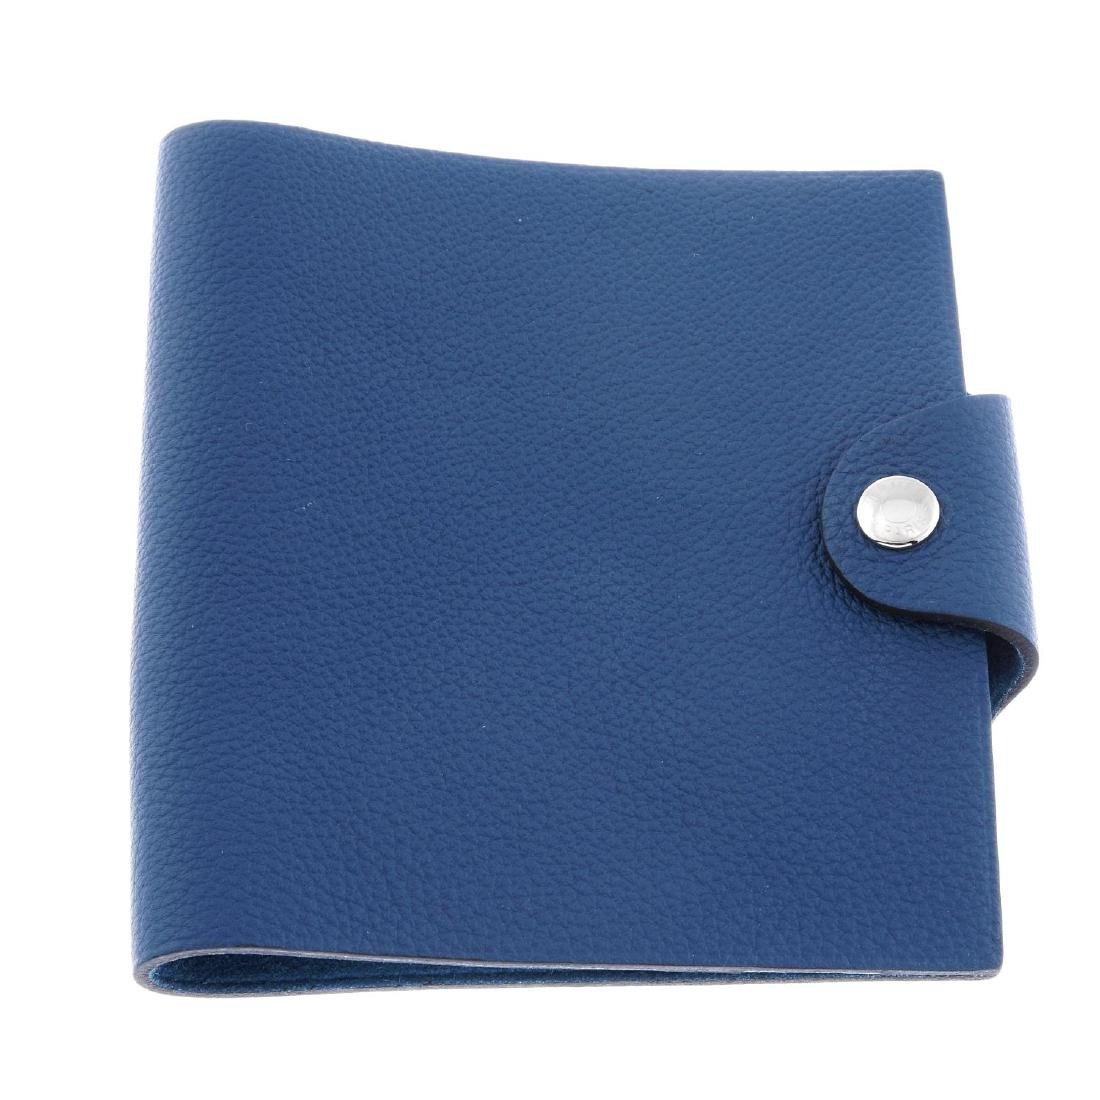 HERMÈS - a blue leather Ulysse notebook cover. Designed